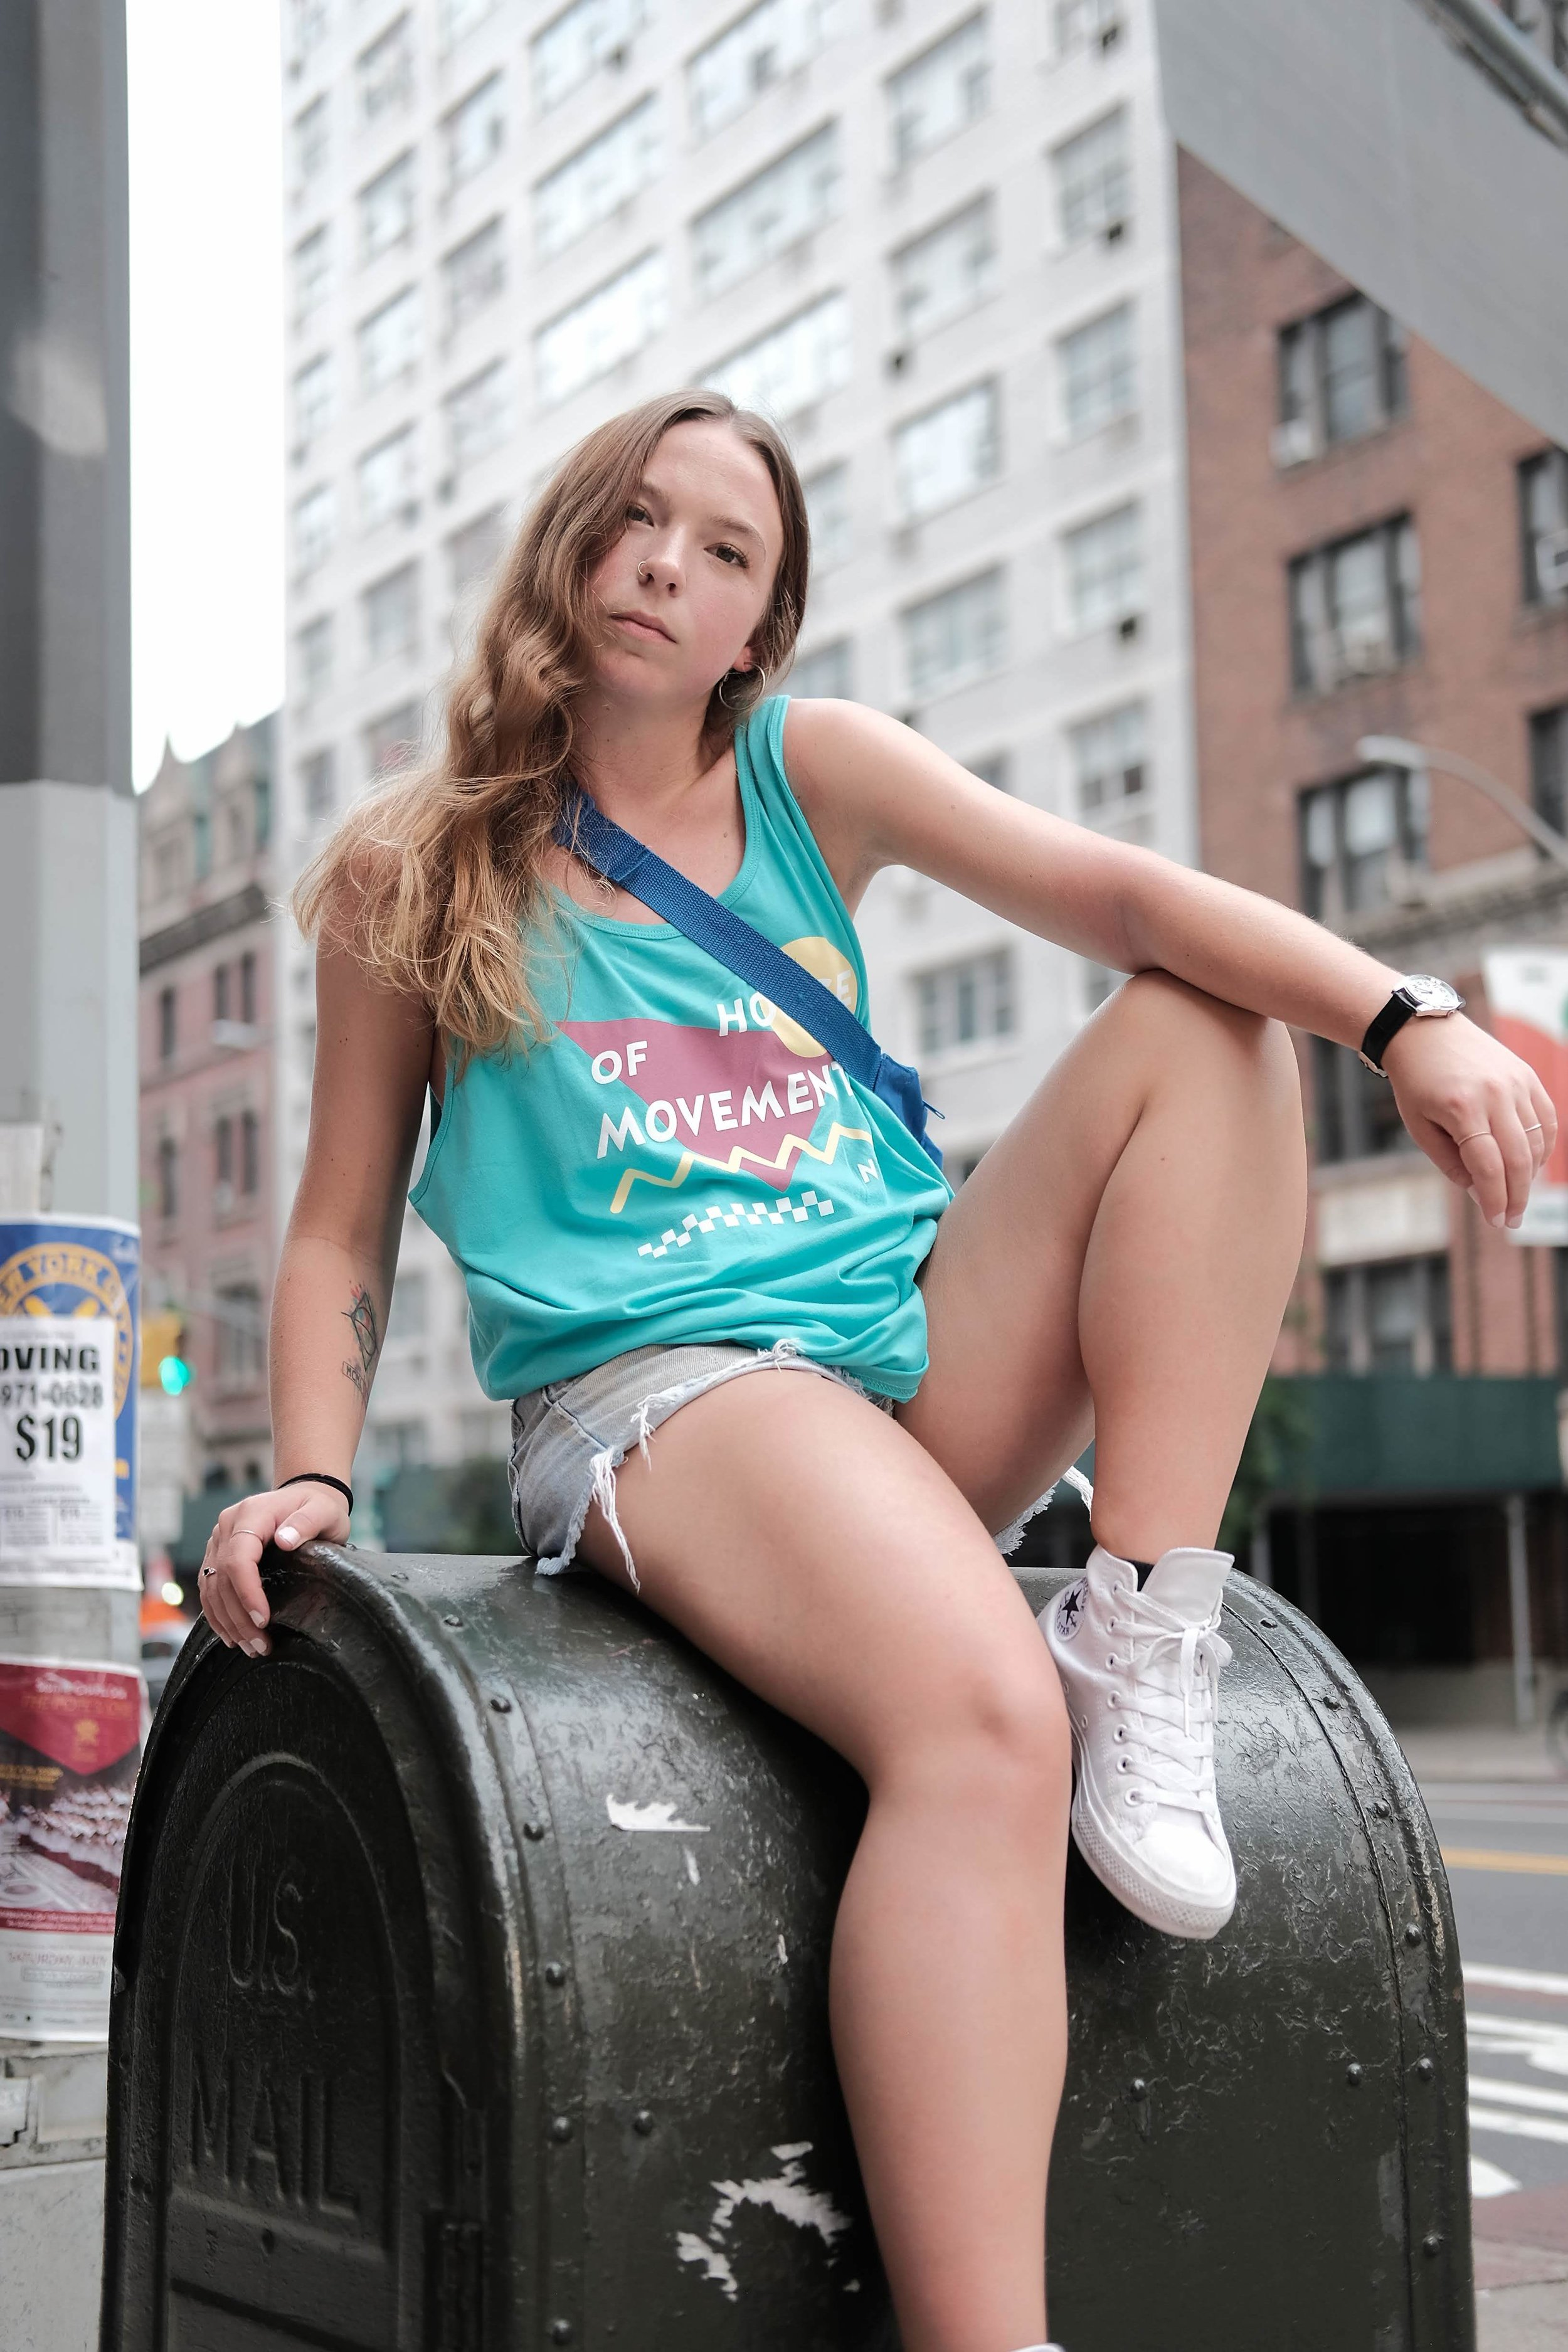 HoM x FoF '90s Ice Cream' Tank (Green) - We are throwing it back to the 90s with this Summer '18 Collection x Collaboration with Friend of a Friend Studios! Block Party Tanks are available in Green and Neon Pink. Printed in New York City.Available in S, M, L, XL100% CottonShipping Available.